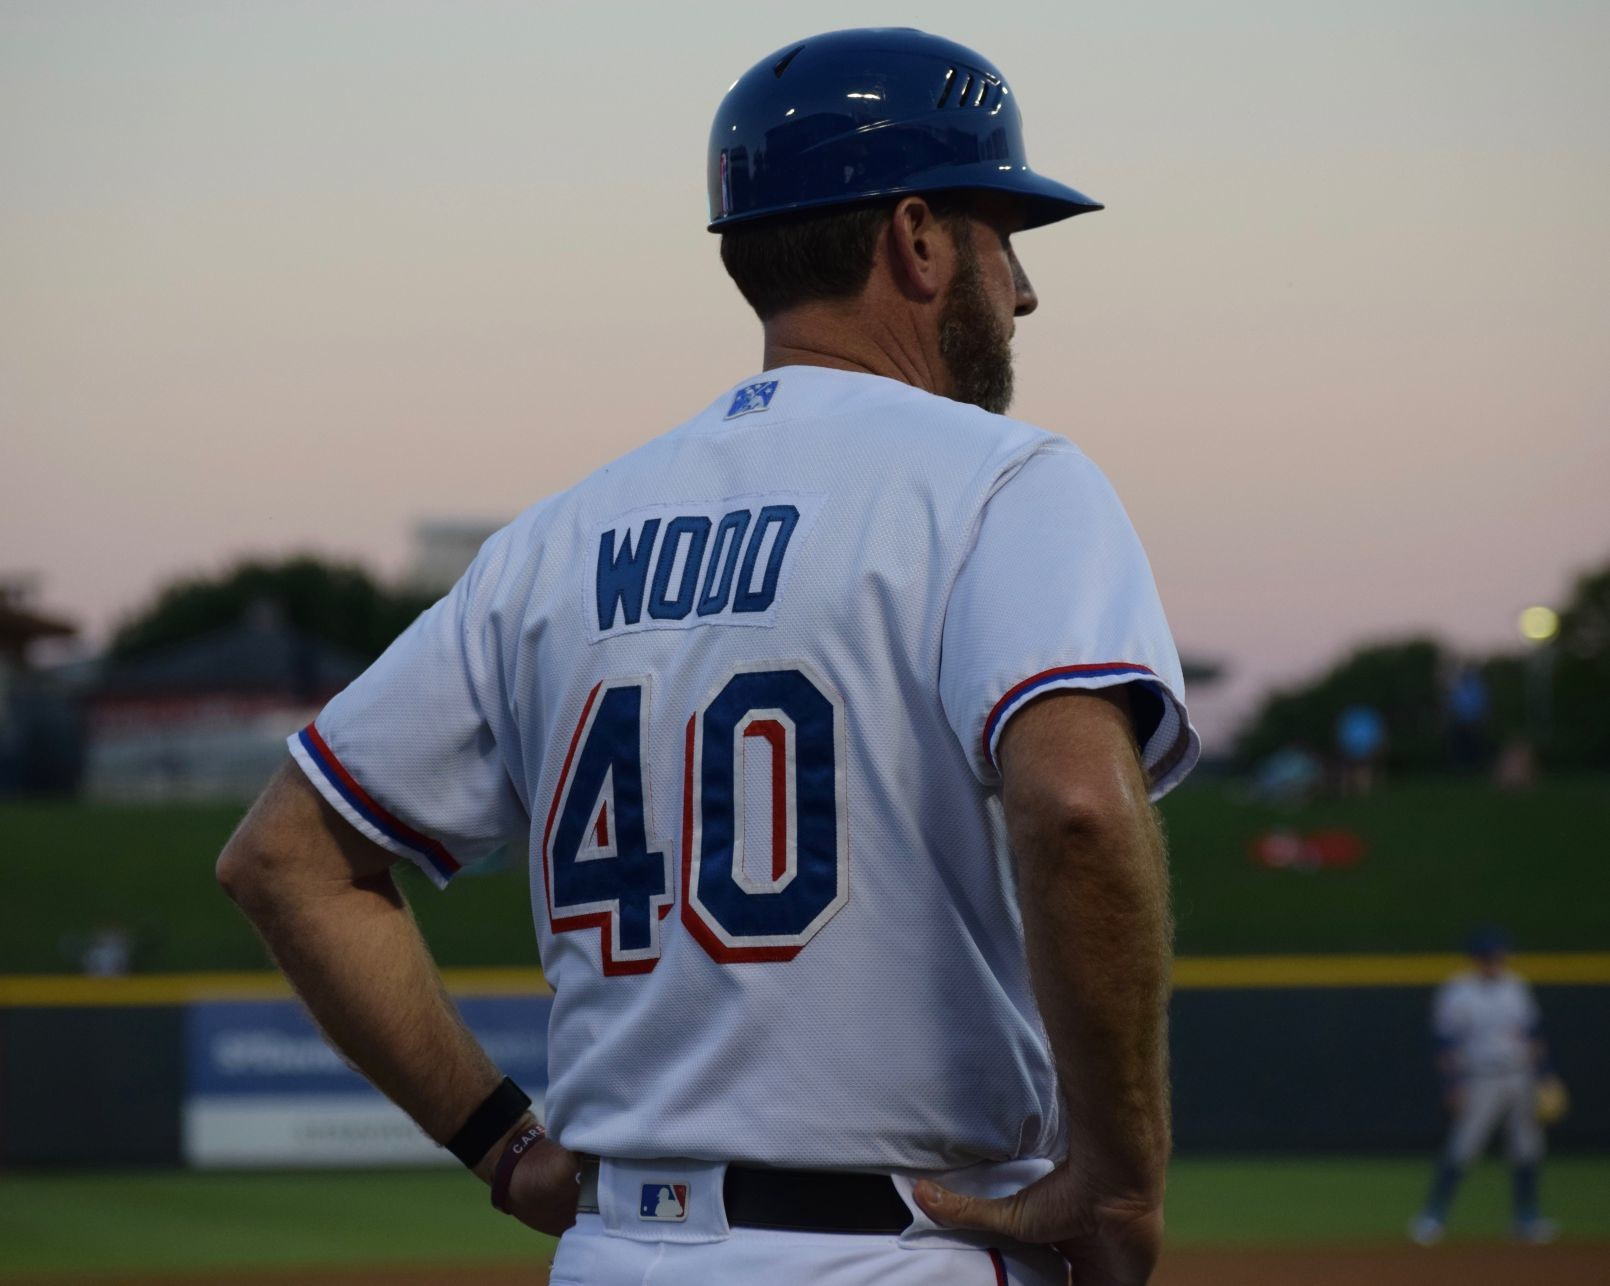 Express manager Jason Wood isn't opposed to using advanced statistics to help manage his team. But the MLB veteran is more used to the normal numbers to evaluate players.